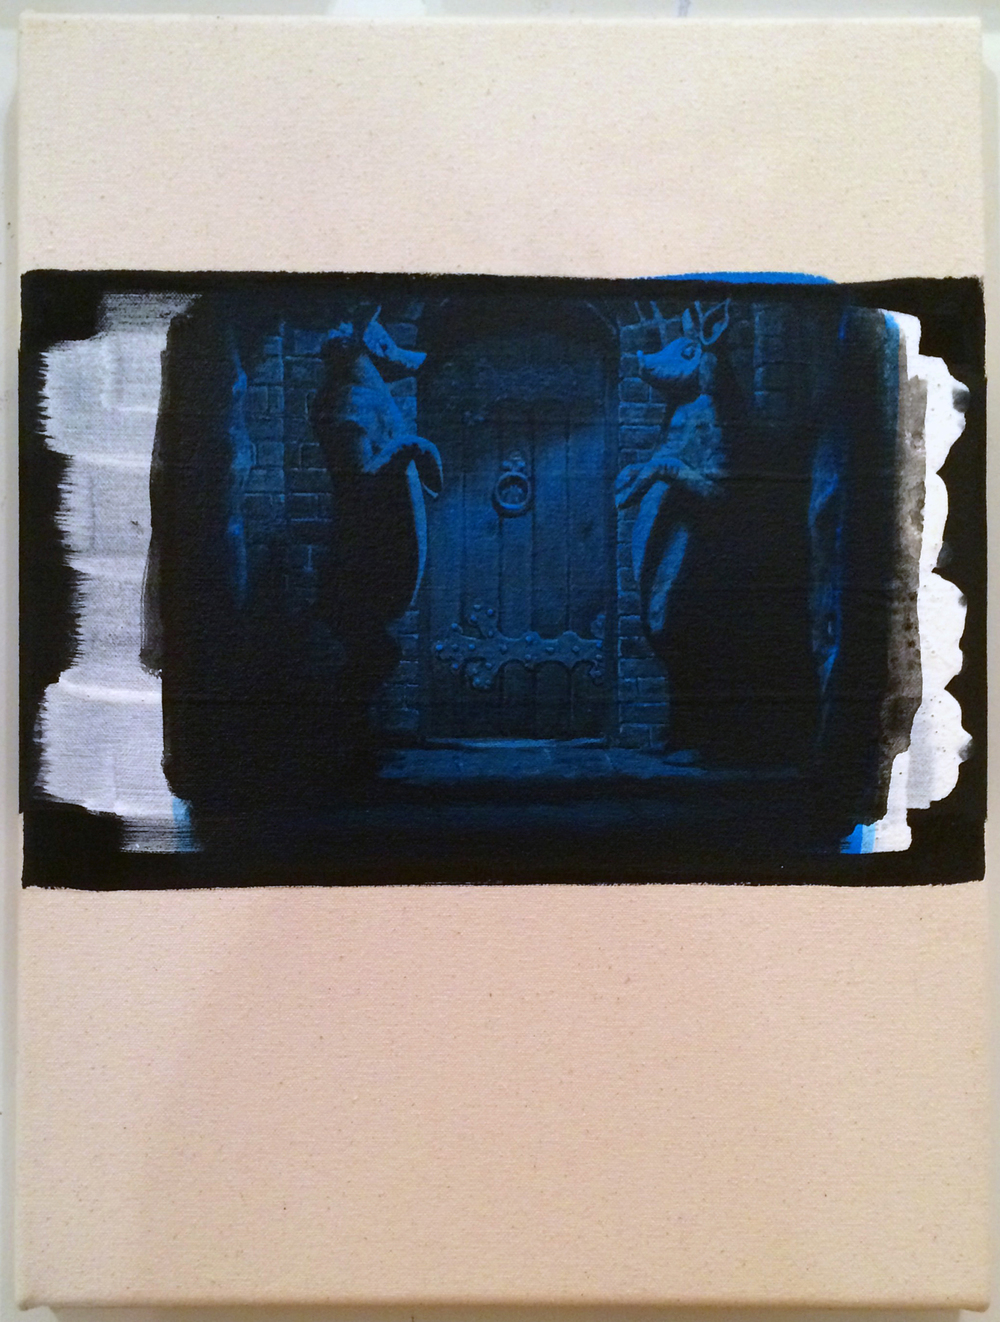 from  Atlas:  (Blue) Häxan, 2016 Acrylic and gesso on canvas 12 x 16 inches